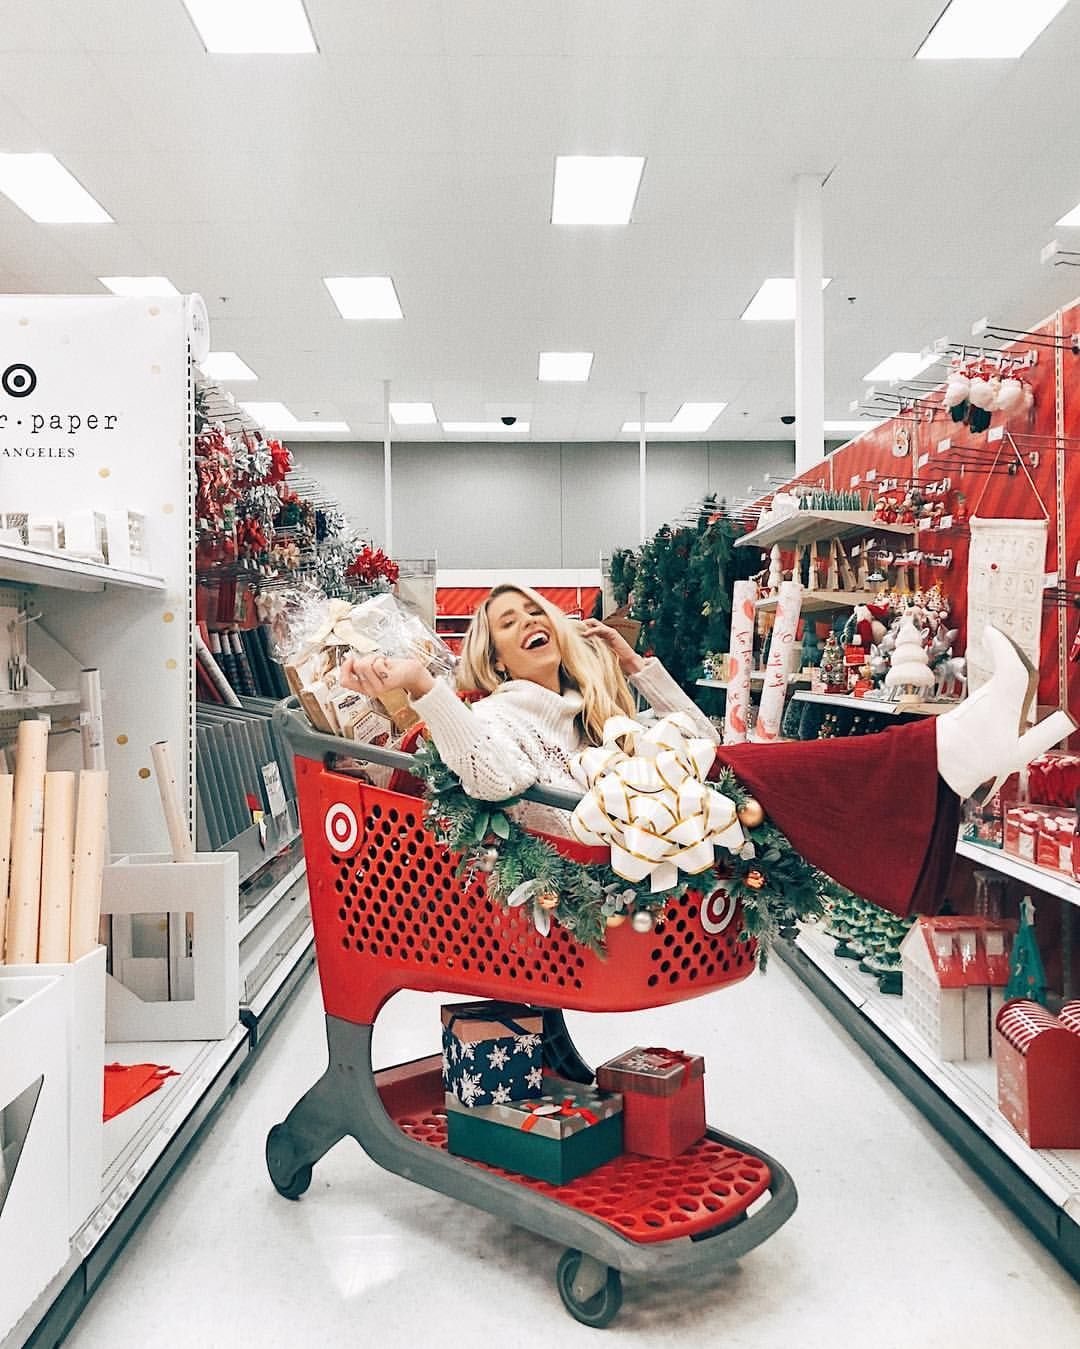 Target Photoshoot Ideas Target Obsessed Blogger Shoot Idea Christmas Photoshoot Christmas Aesthetic Cozy Christmas